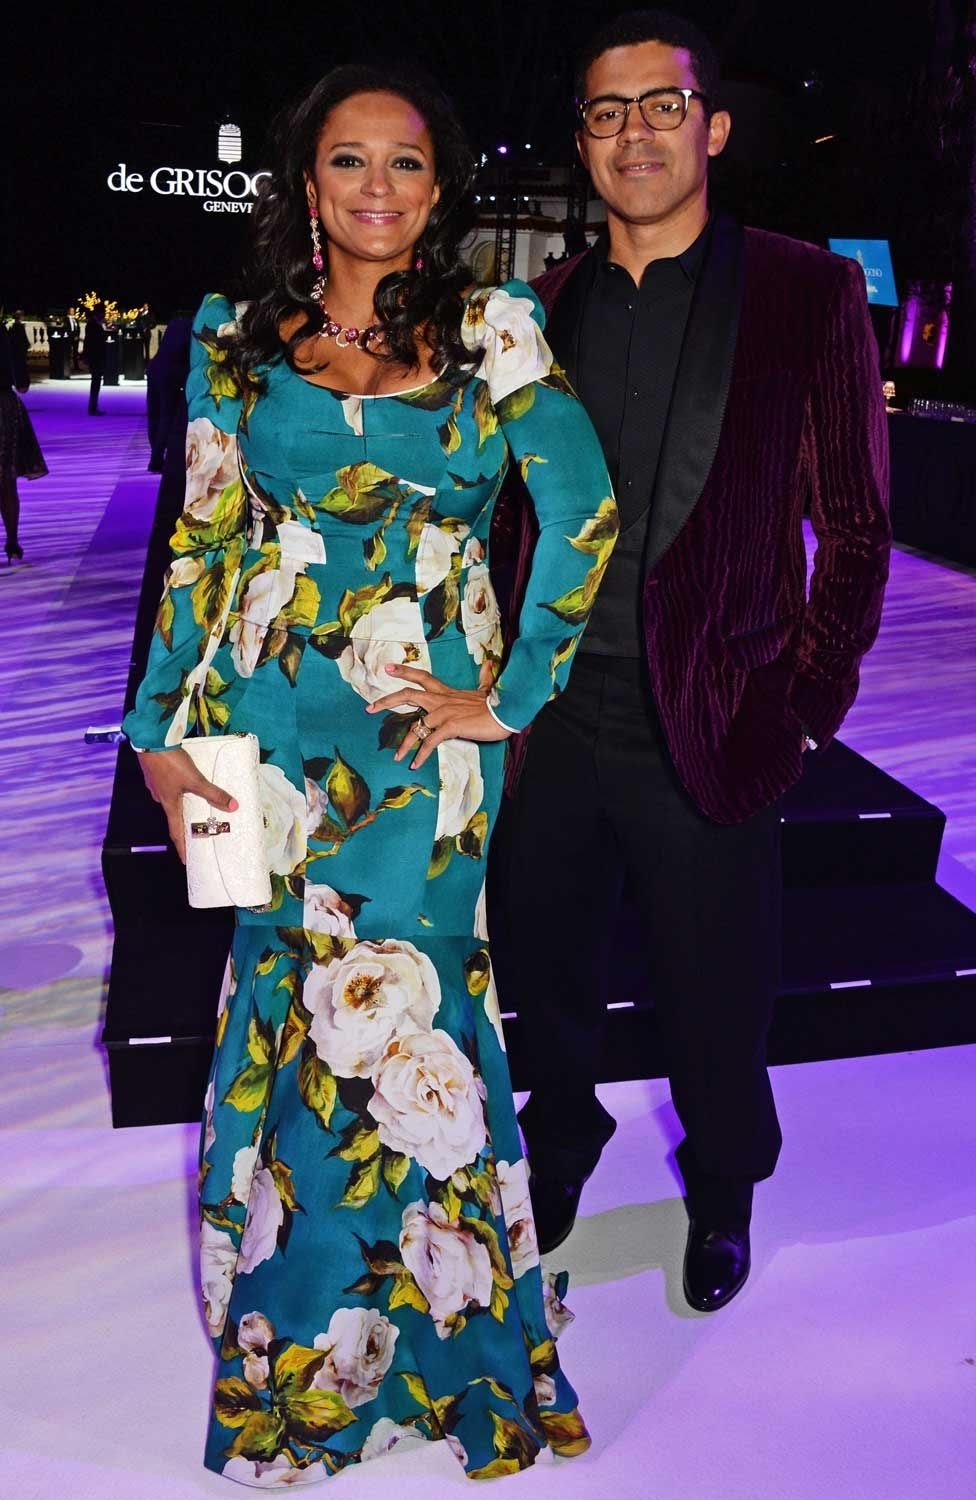 Isabel dos Santos and Sindika Dokolo attend the de Grisogono party during the 69th Cannes Film Festival at Hotel du Cap-Eden-Roc on May 17, 2016 in Cap d'Antibes, France